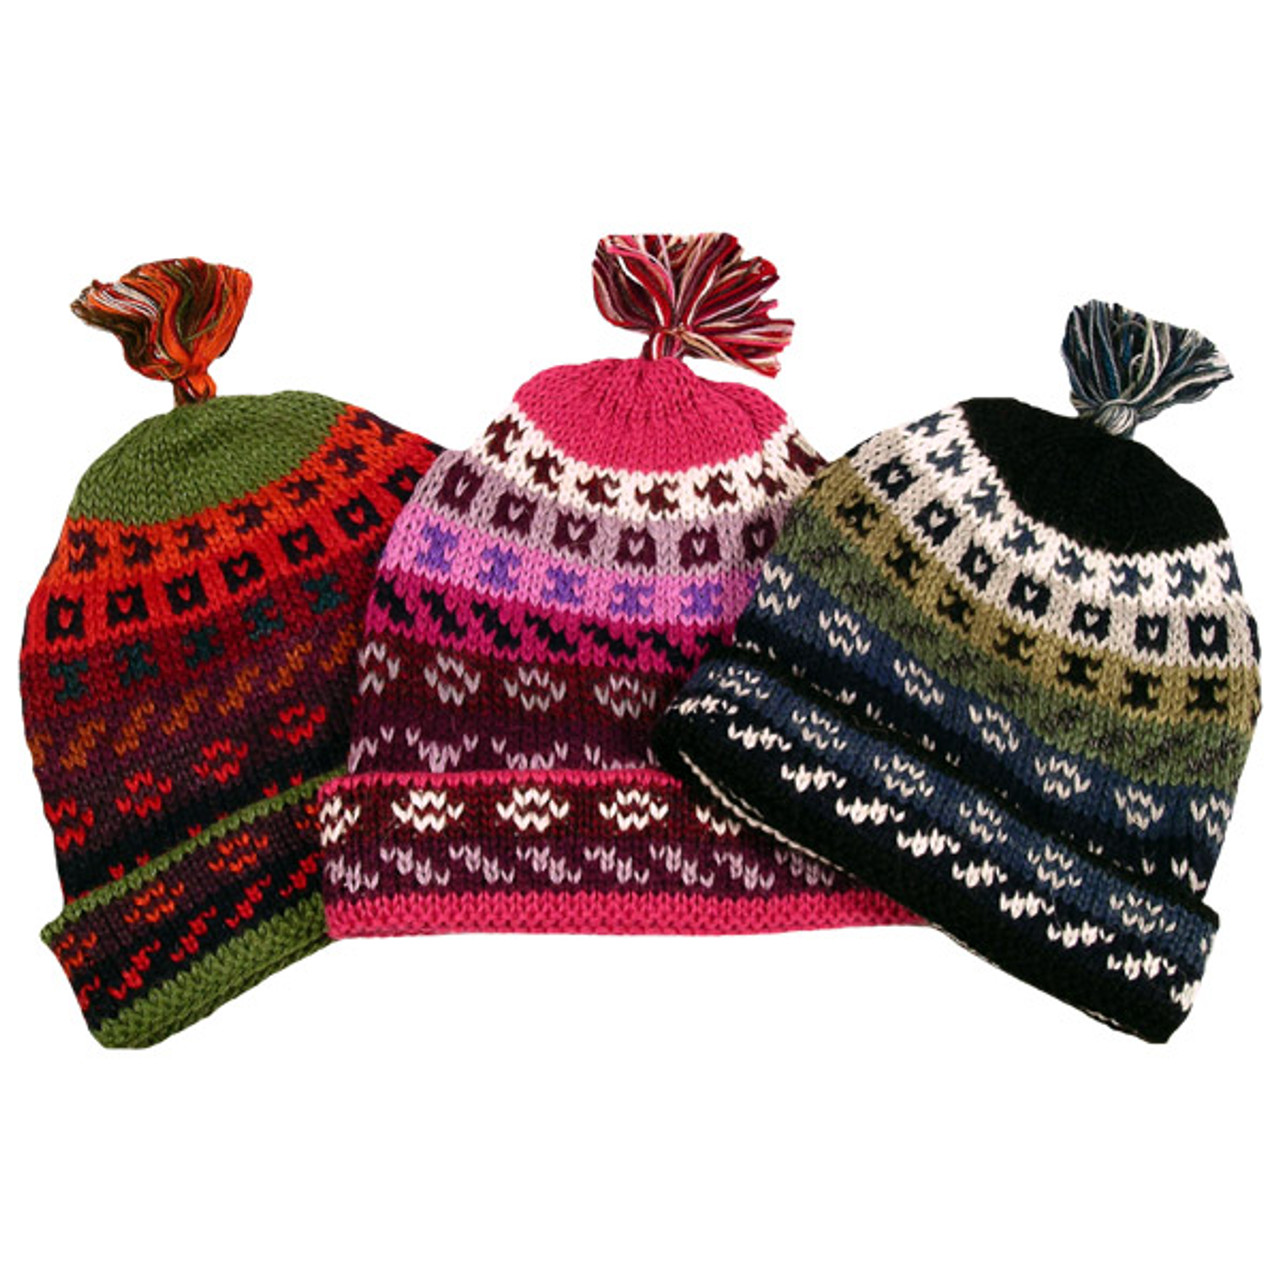 56986b6915acc2 100% Alpaca Striped/Geometric Beanie Hat Lined Fleece Adult - Incazteca